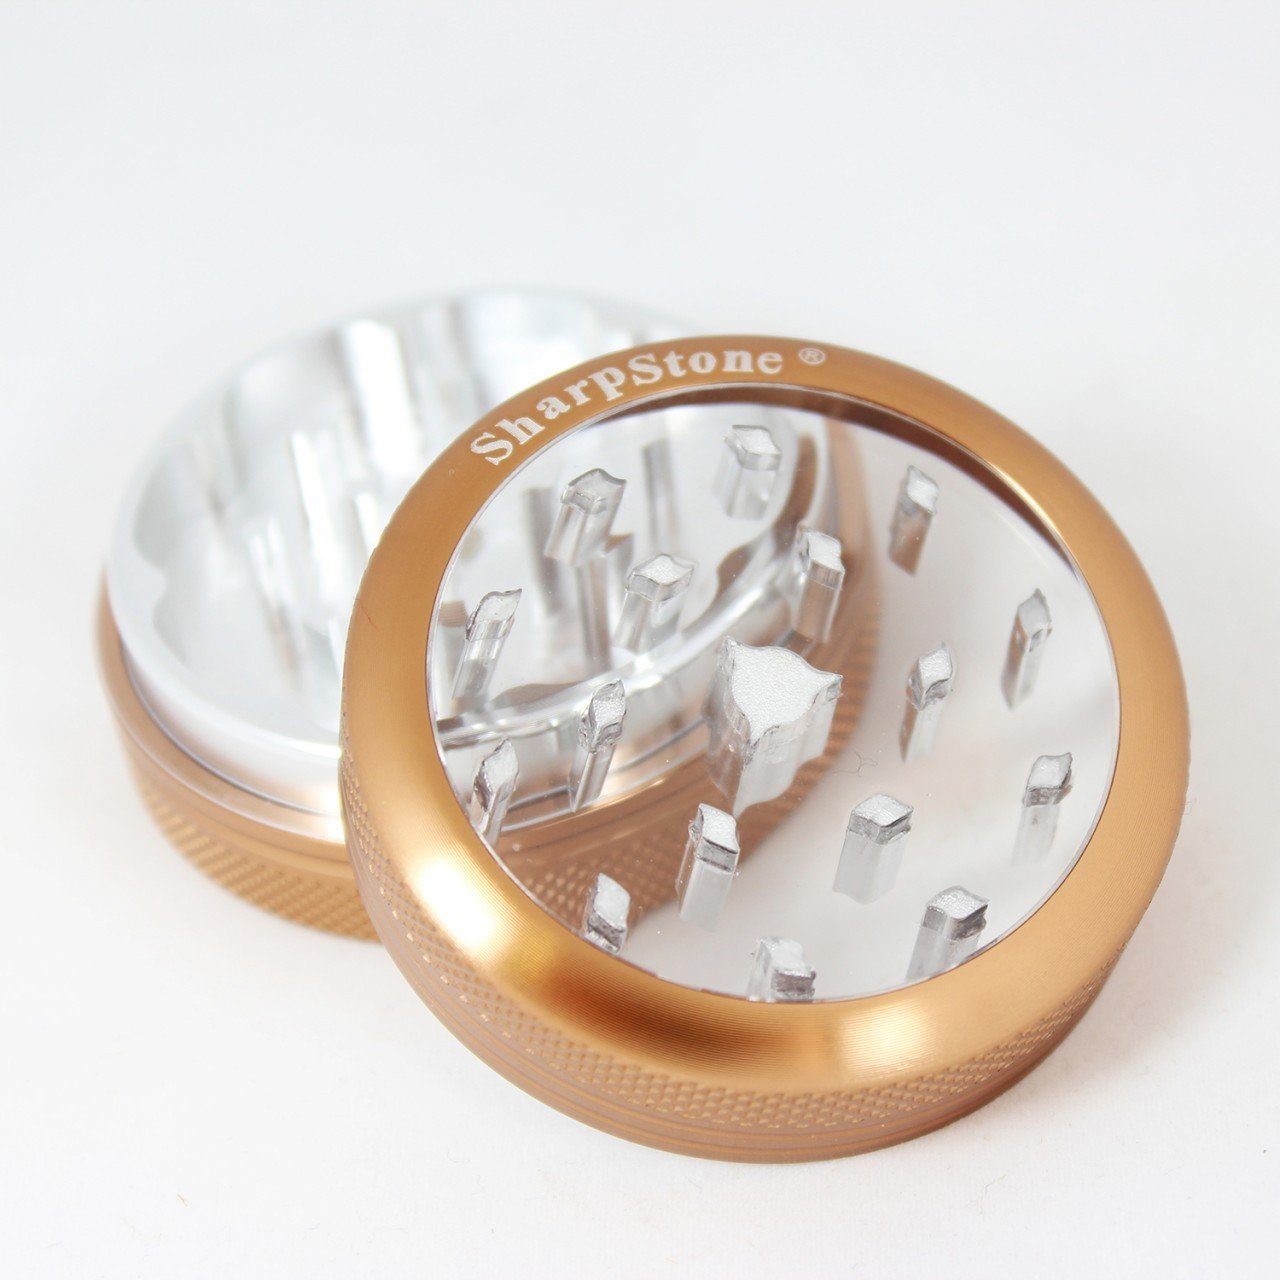 Sharp Stone Official Authentic 2 Piece Grinder Clear Top 2.2 Inches Brown + Free Performance Technology Wrist Band